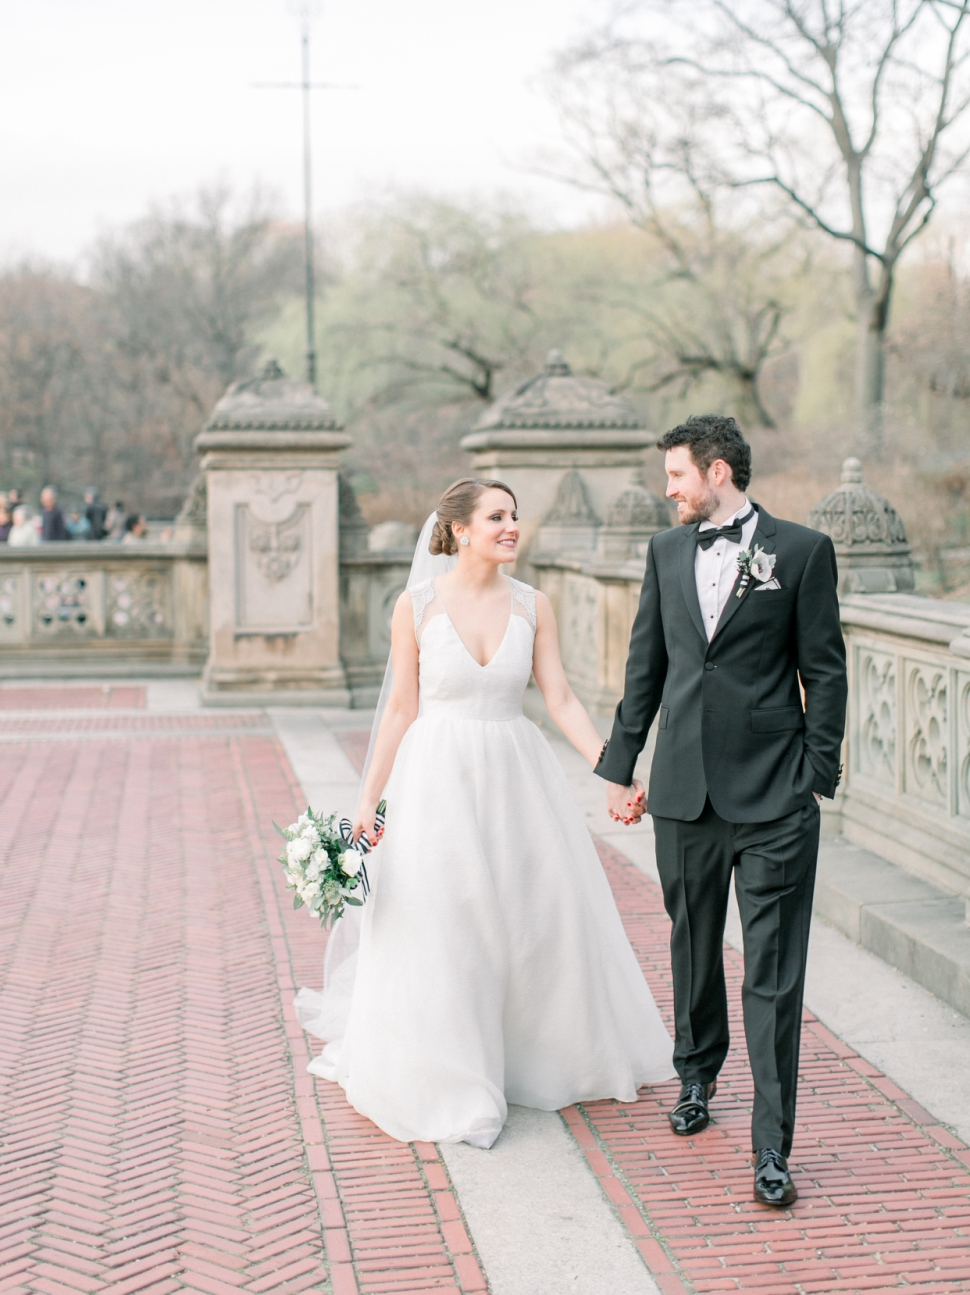 Central-Park-Boathouse-Wedding-Photographer-Cassi-Claire_12.jpg